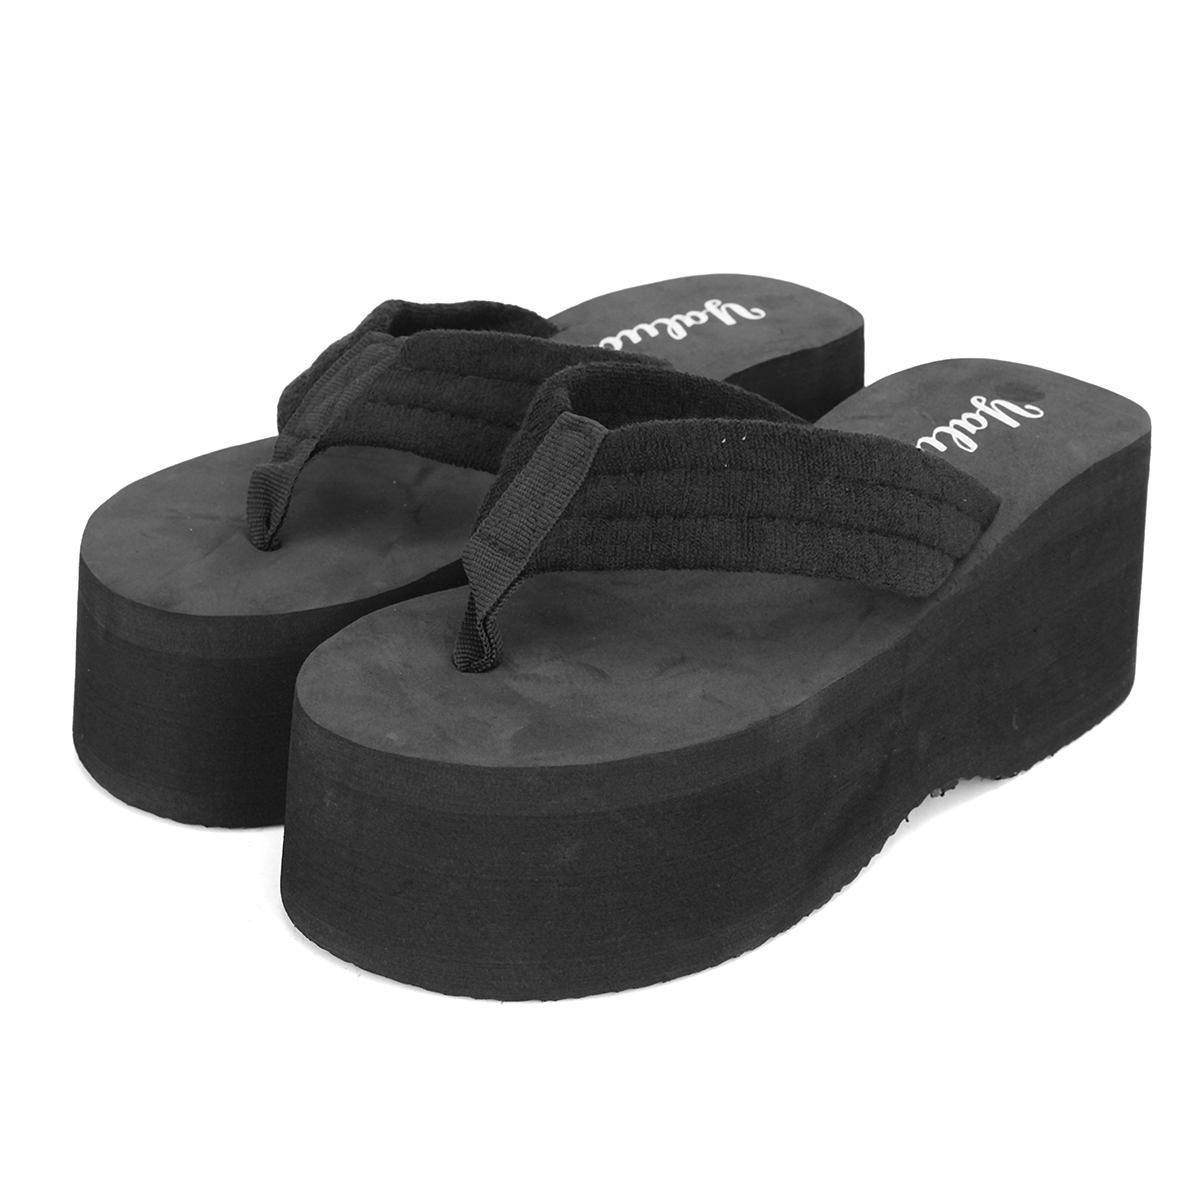 Platform Flip-Flops – Rubber High Heel Wedge Flip-Flop. Since making many feet happy! Wedge style (solid color, 1 ½ inch heel, unbranded, rubber, machine washable, non slippery): 11 Colors you can choose from: Black, White, Brown, Navy Blue, Sky Blue, .